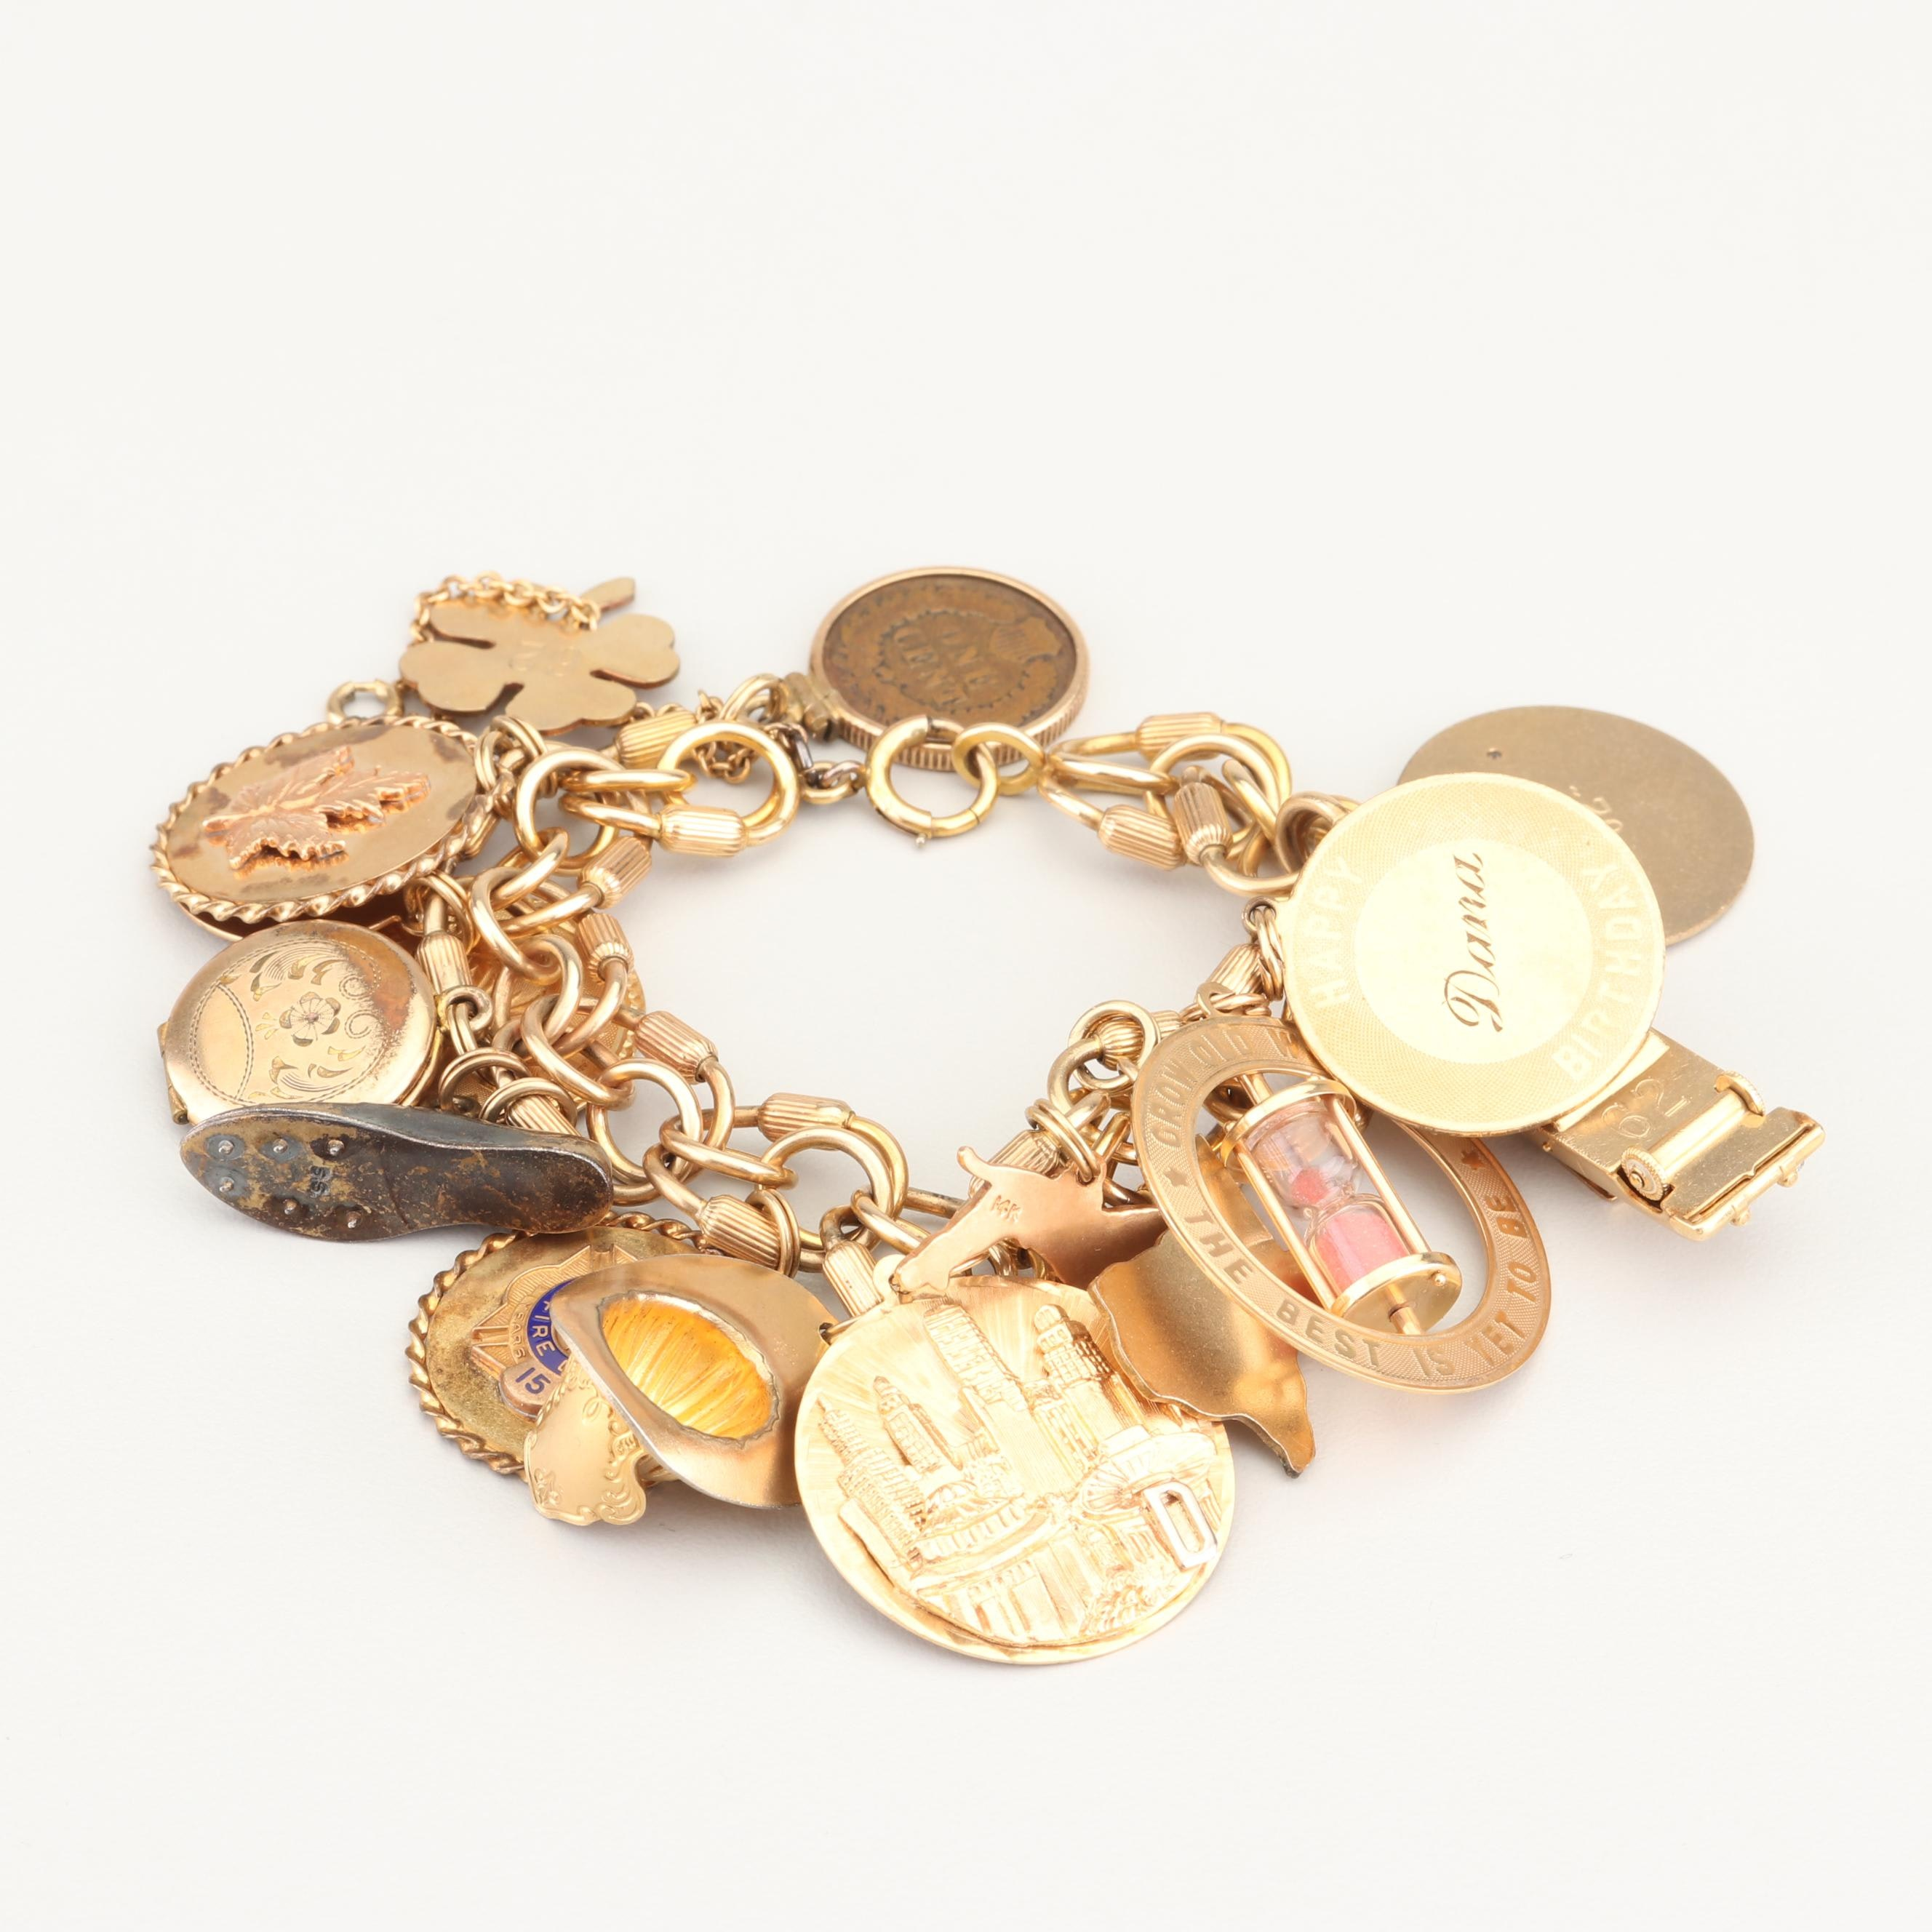 Vintage 12K Yellow Gold Filled Bracelet with 14K Gold and Gold Filled Charms